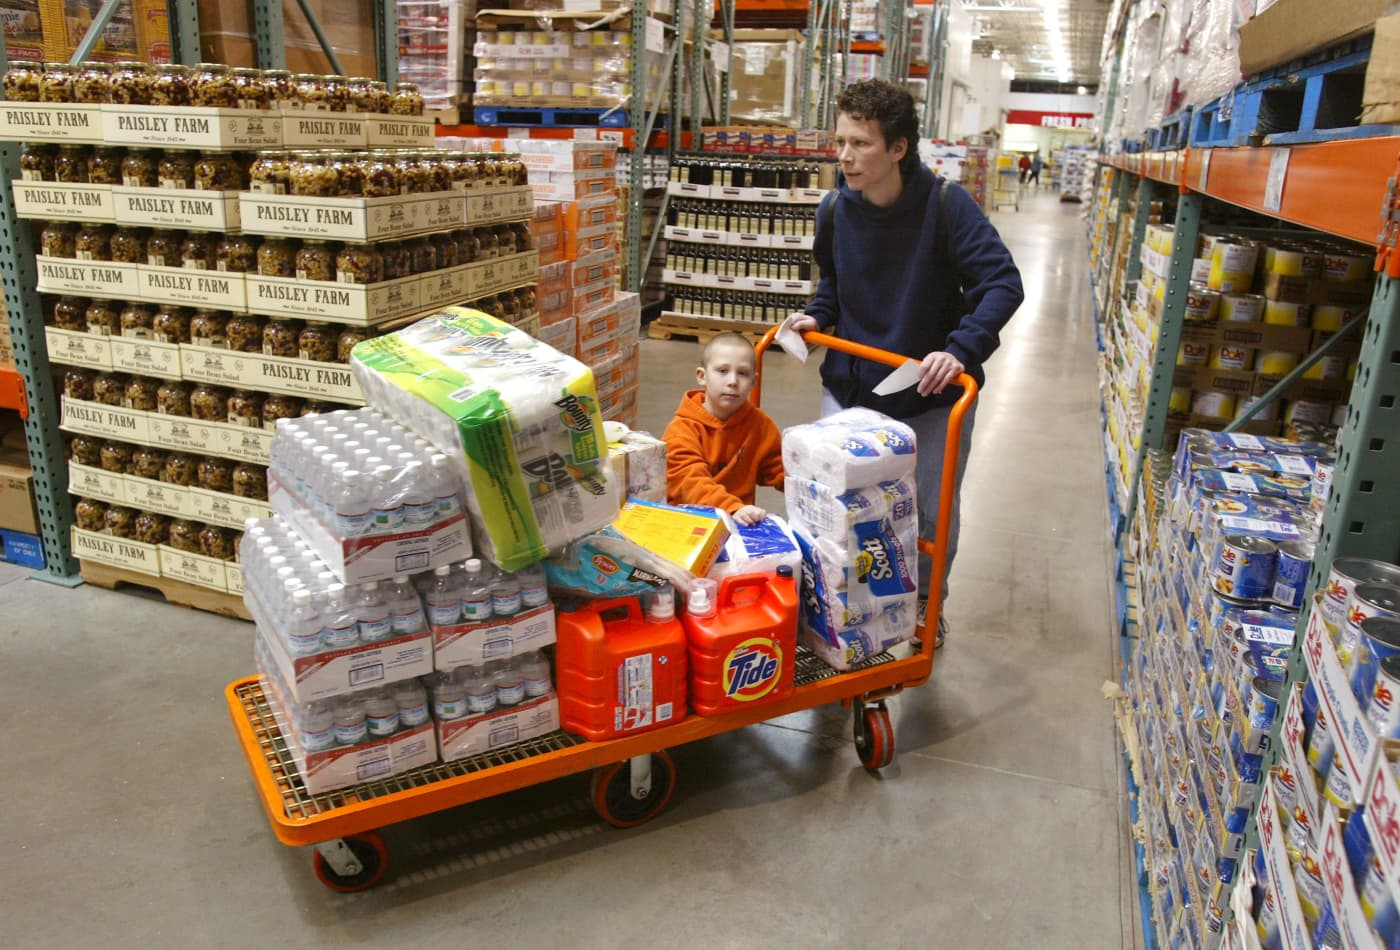 Special dividend for shareholders is always on the table, Costco CEO says